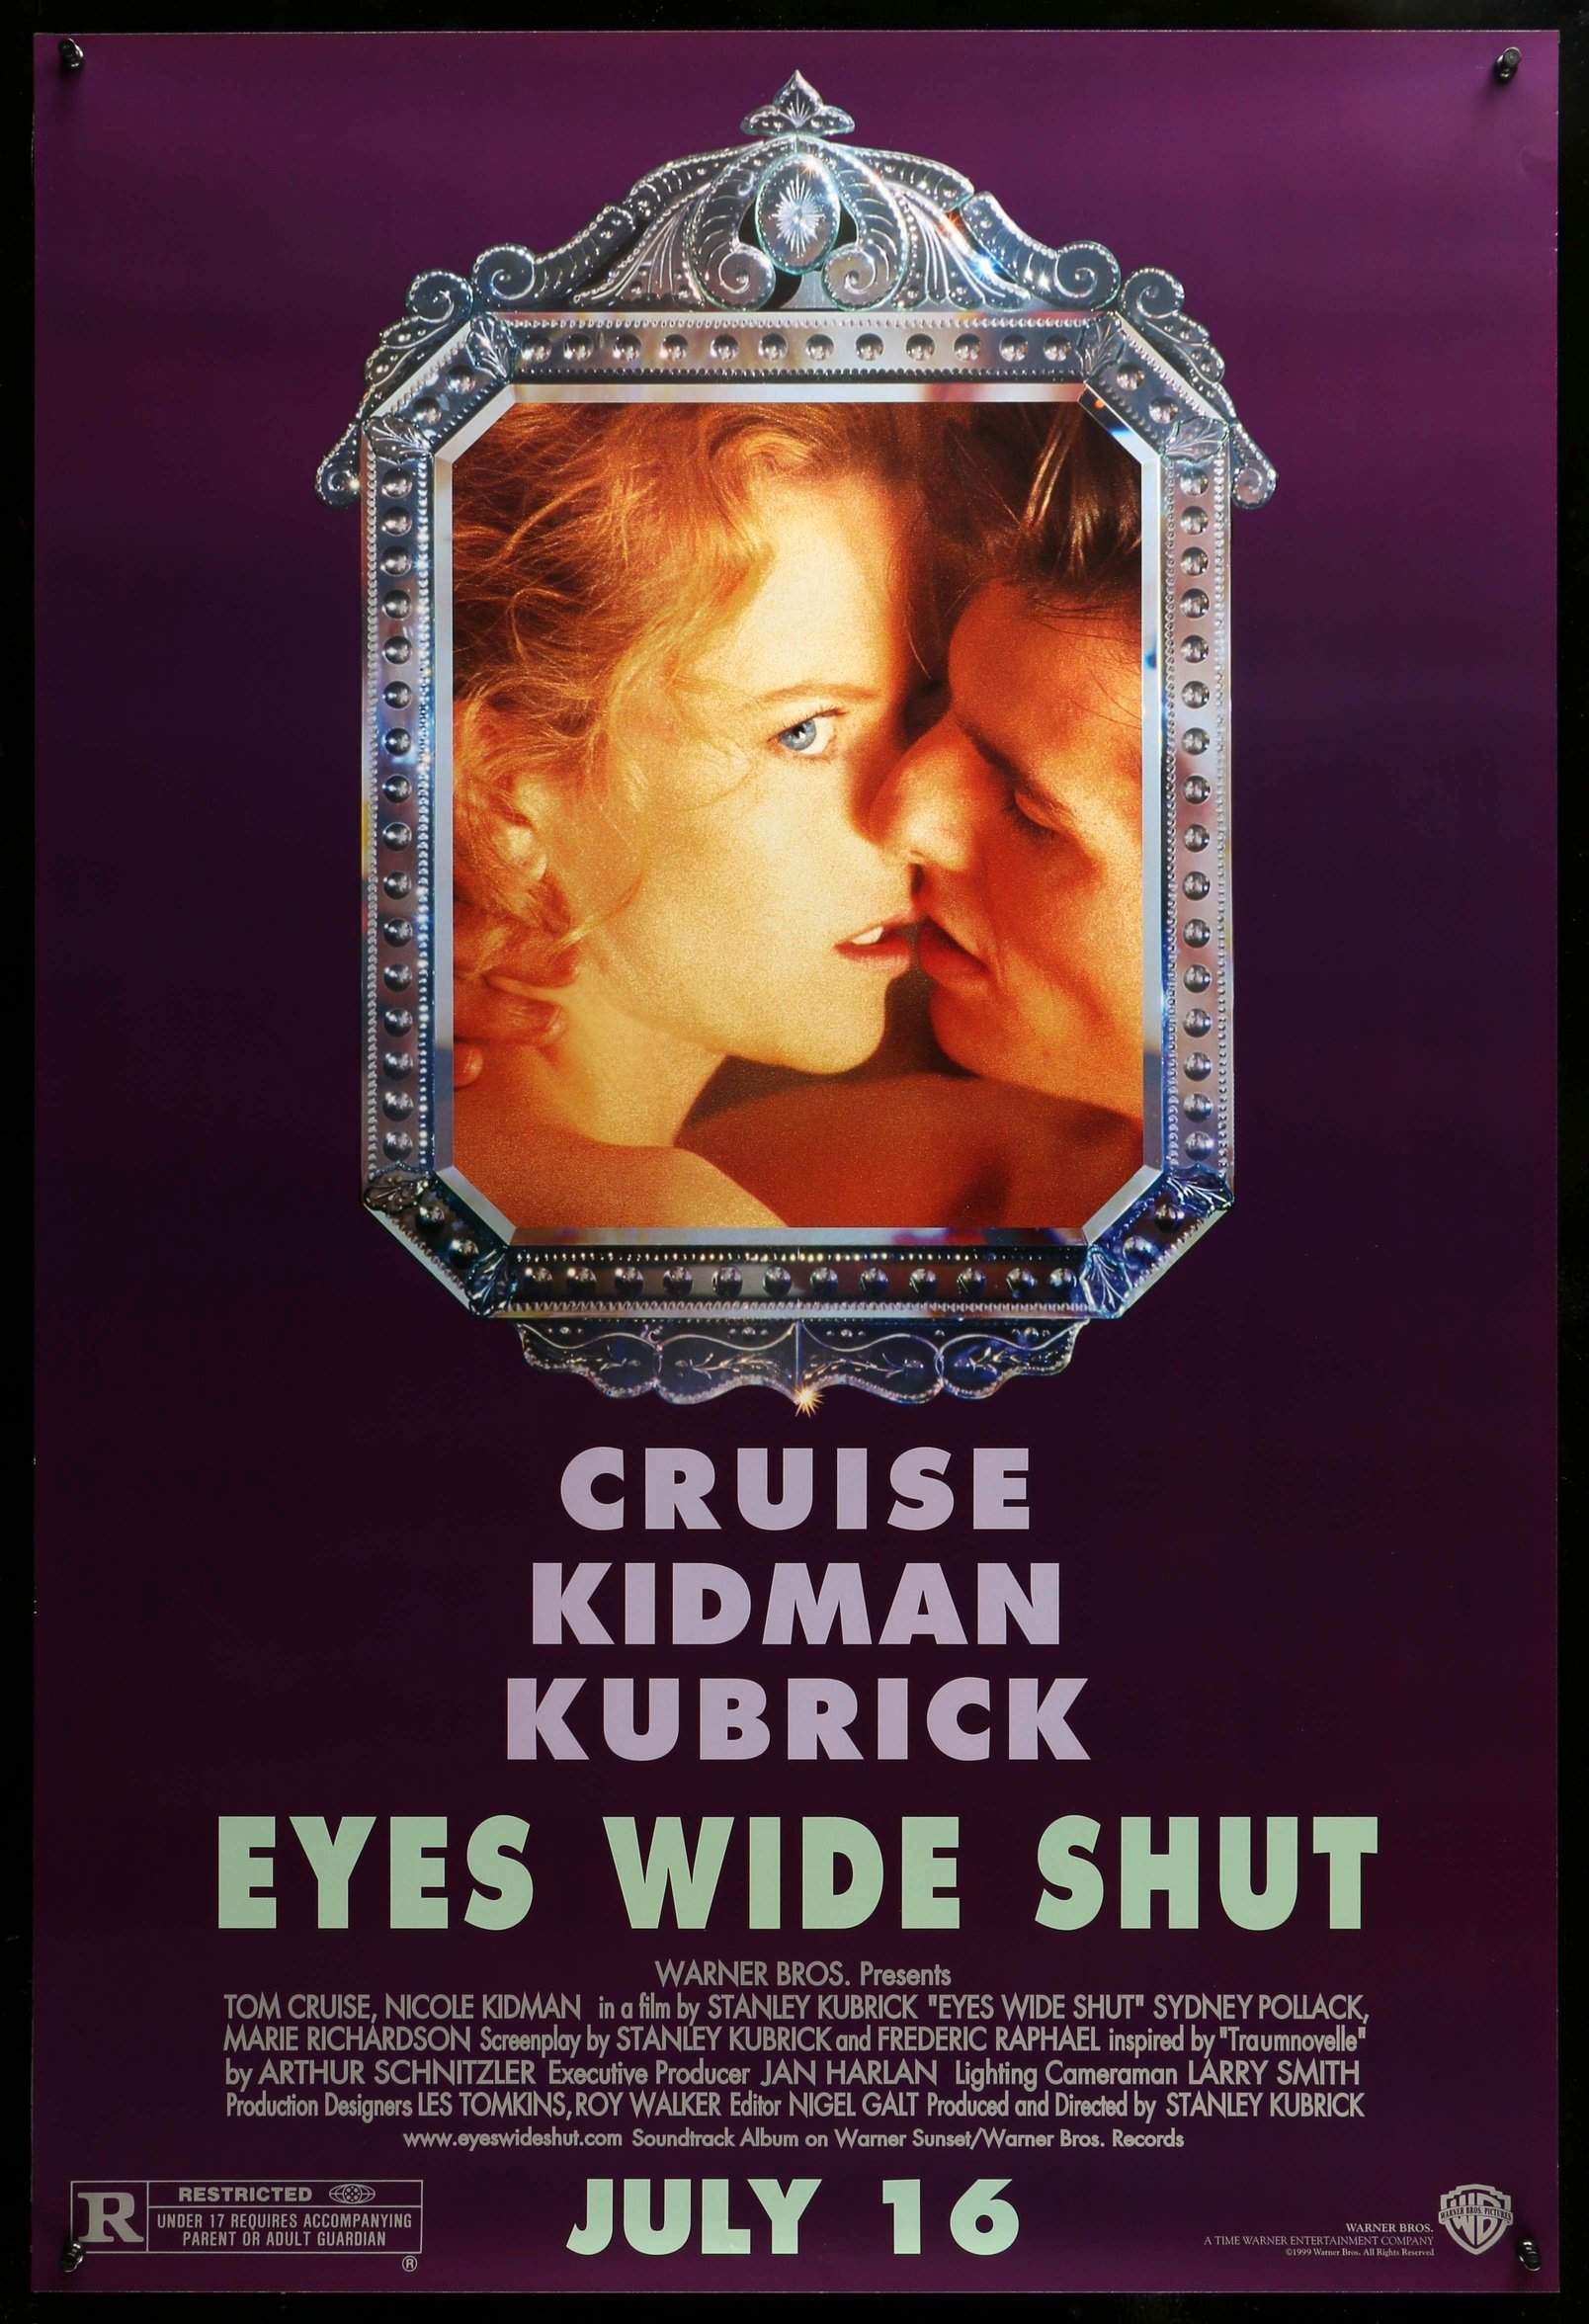 Eyes Wide Shut (1999) - Directed by: Stanley KubrickStarring: Tom Cruise, Nicole Kidman, Todd Field, Sydney PollackRated: R for Strong Sexual Content, Nudity, Language and Some Drug-Related MaterialRunning Time: 2 h 39 mTMM Score: 4 stars out of 5STRENGTHS: Directing, Cinematography, Writing, Some ActingWEAKNESSES: Some Acting, Length and Pacing, Climaxes Too Early